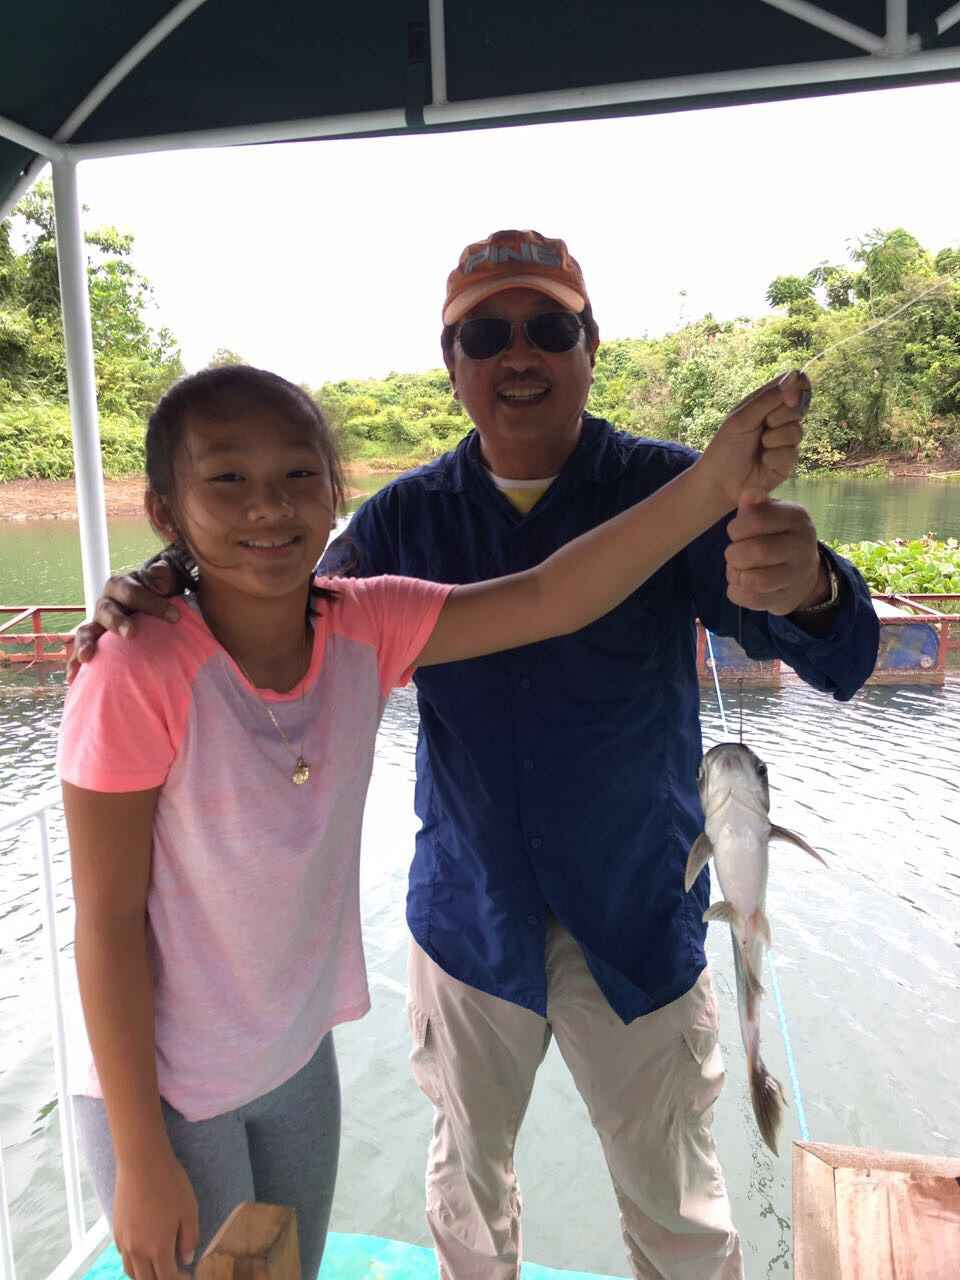 Caliraya_Springs_Golf_Fishing_Tournament-07.jpg